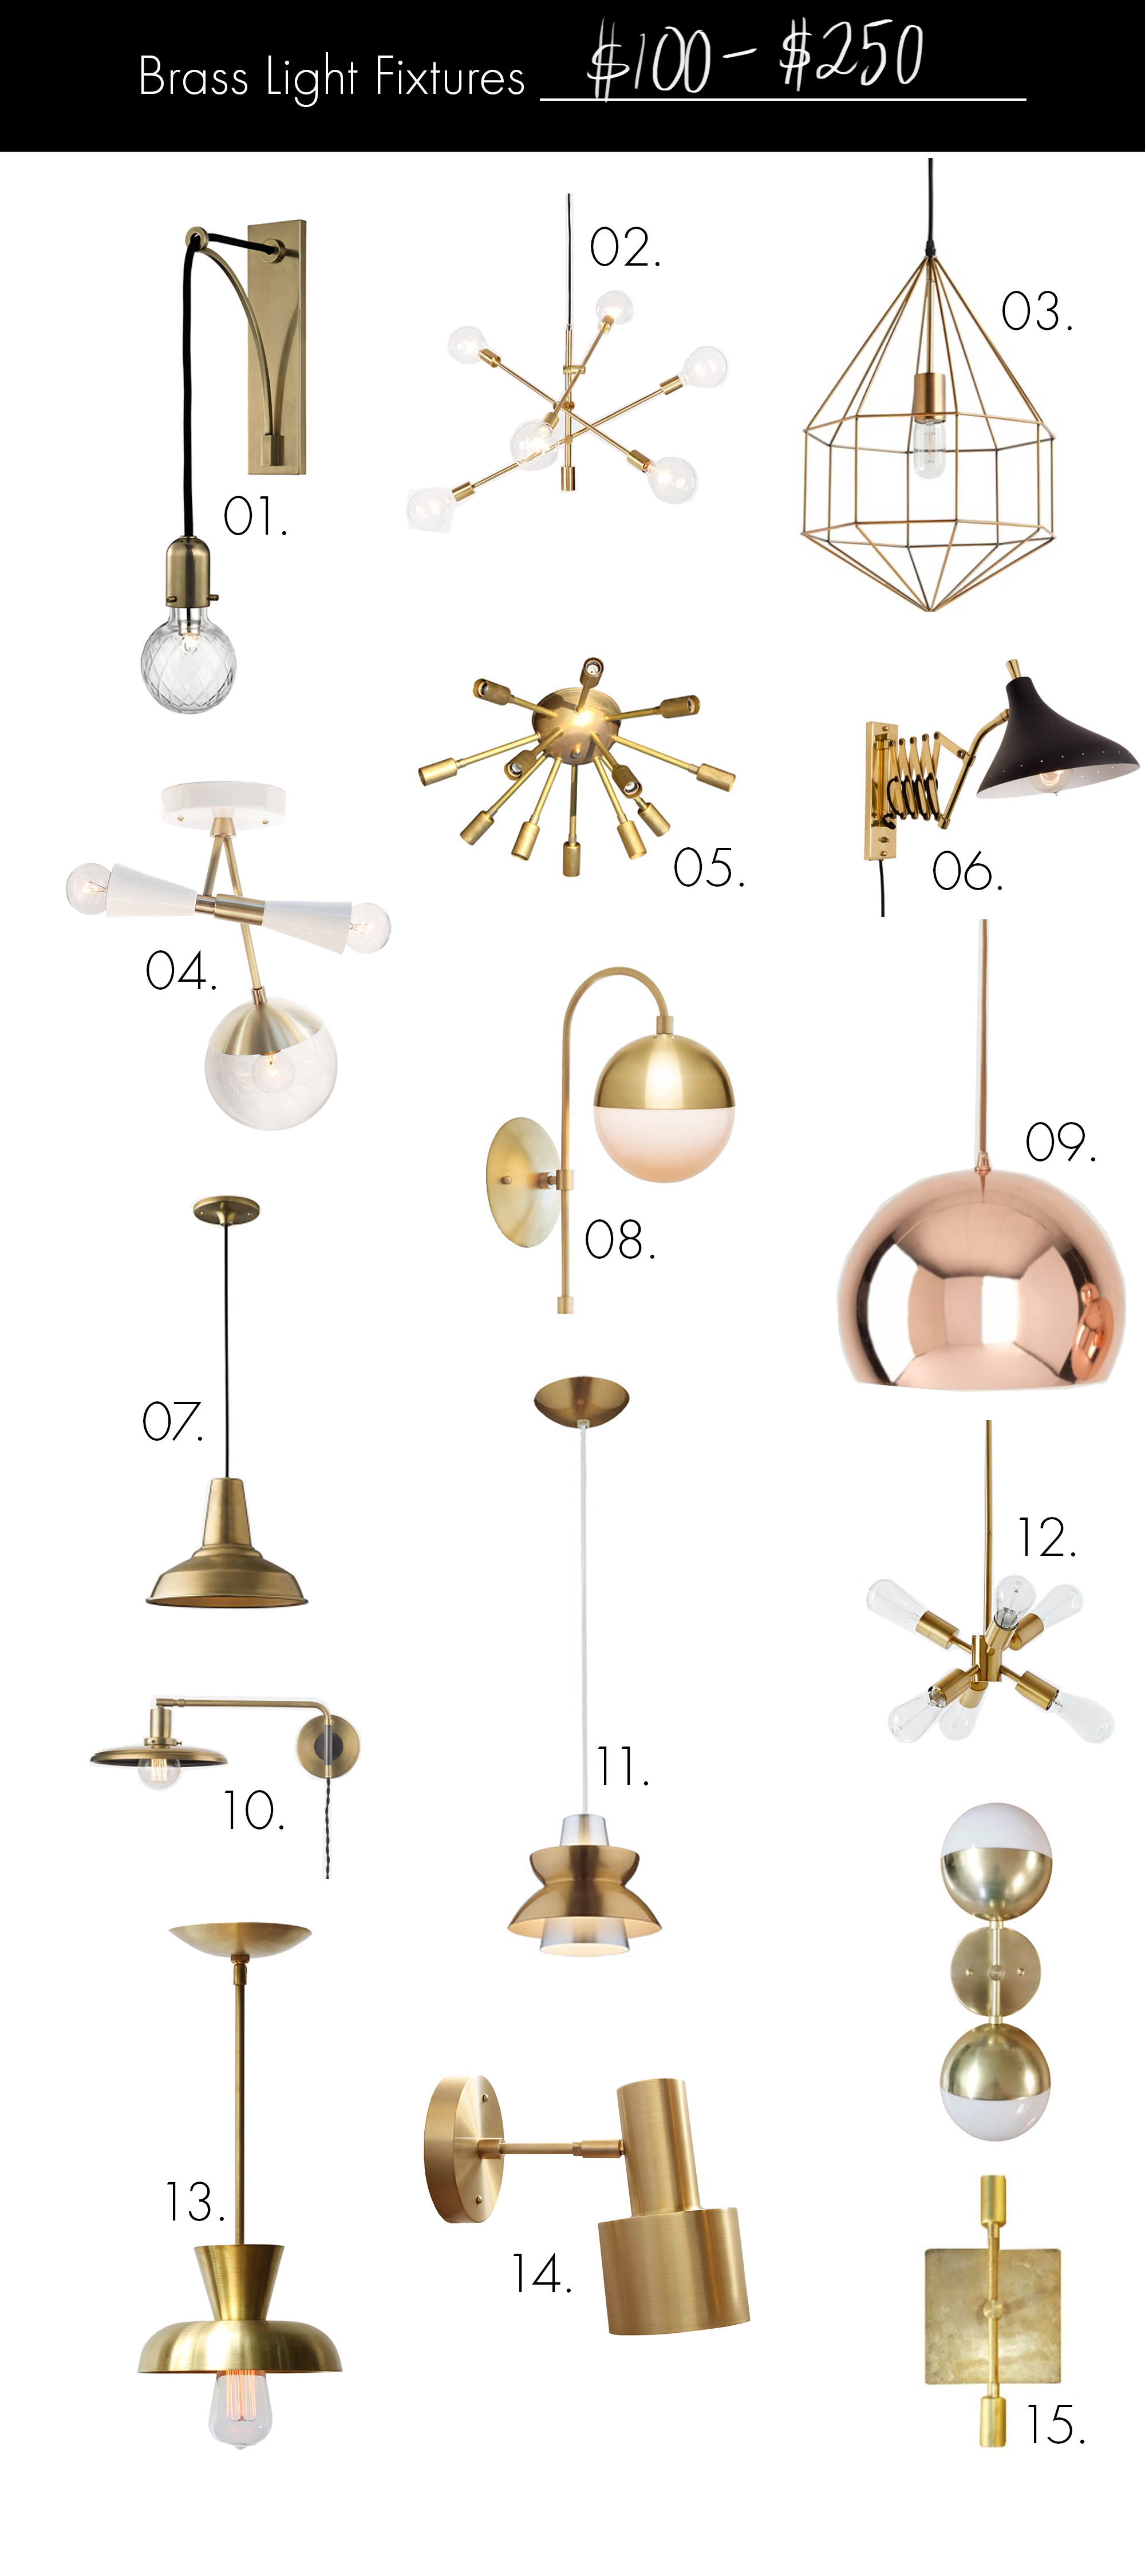 Brass Light Fixtures (on any budget!) $100-$250